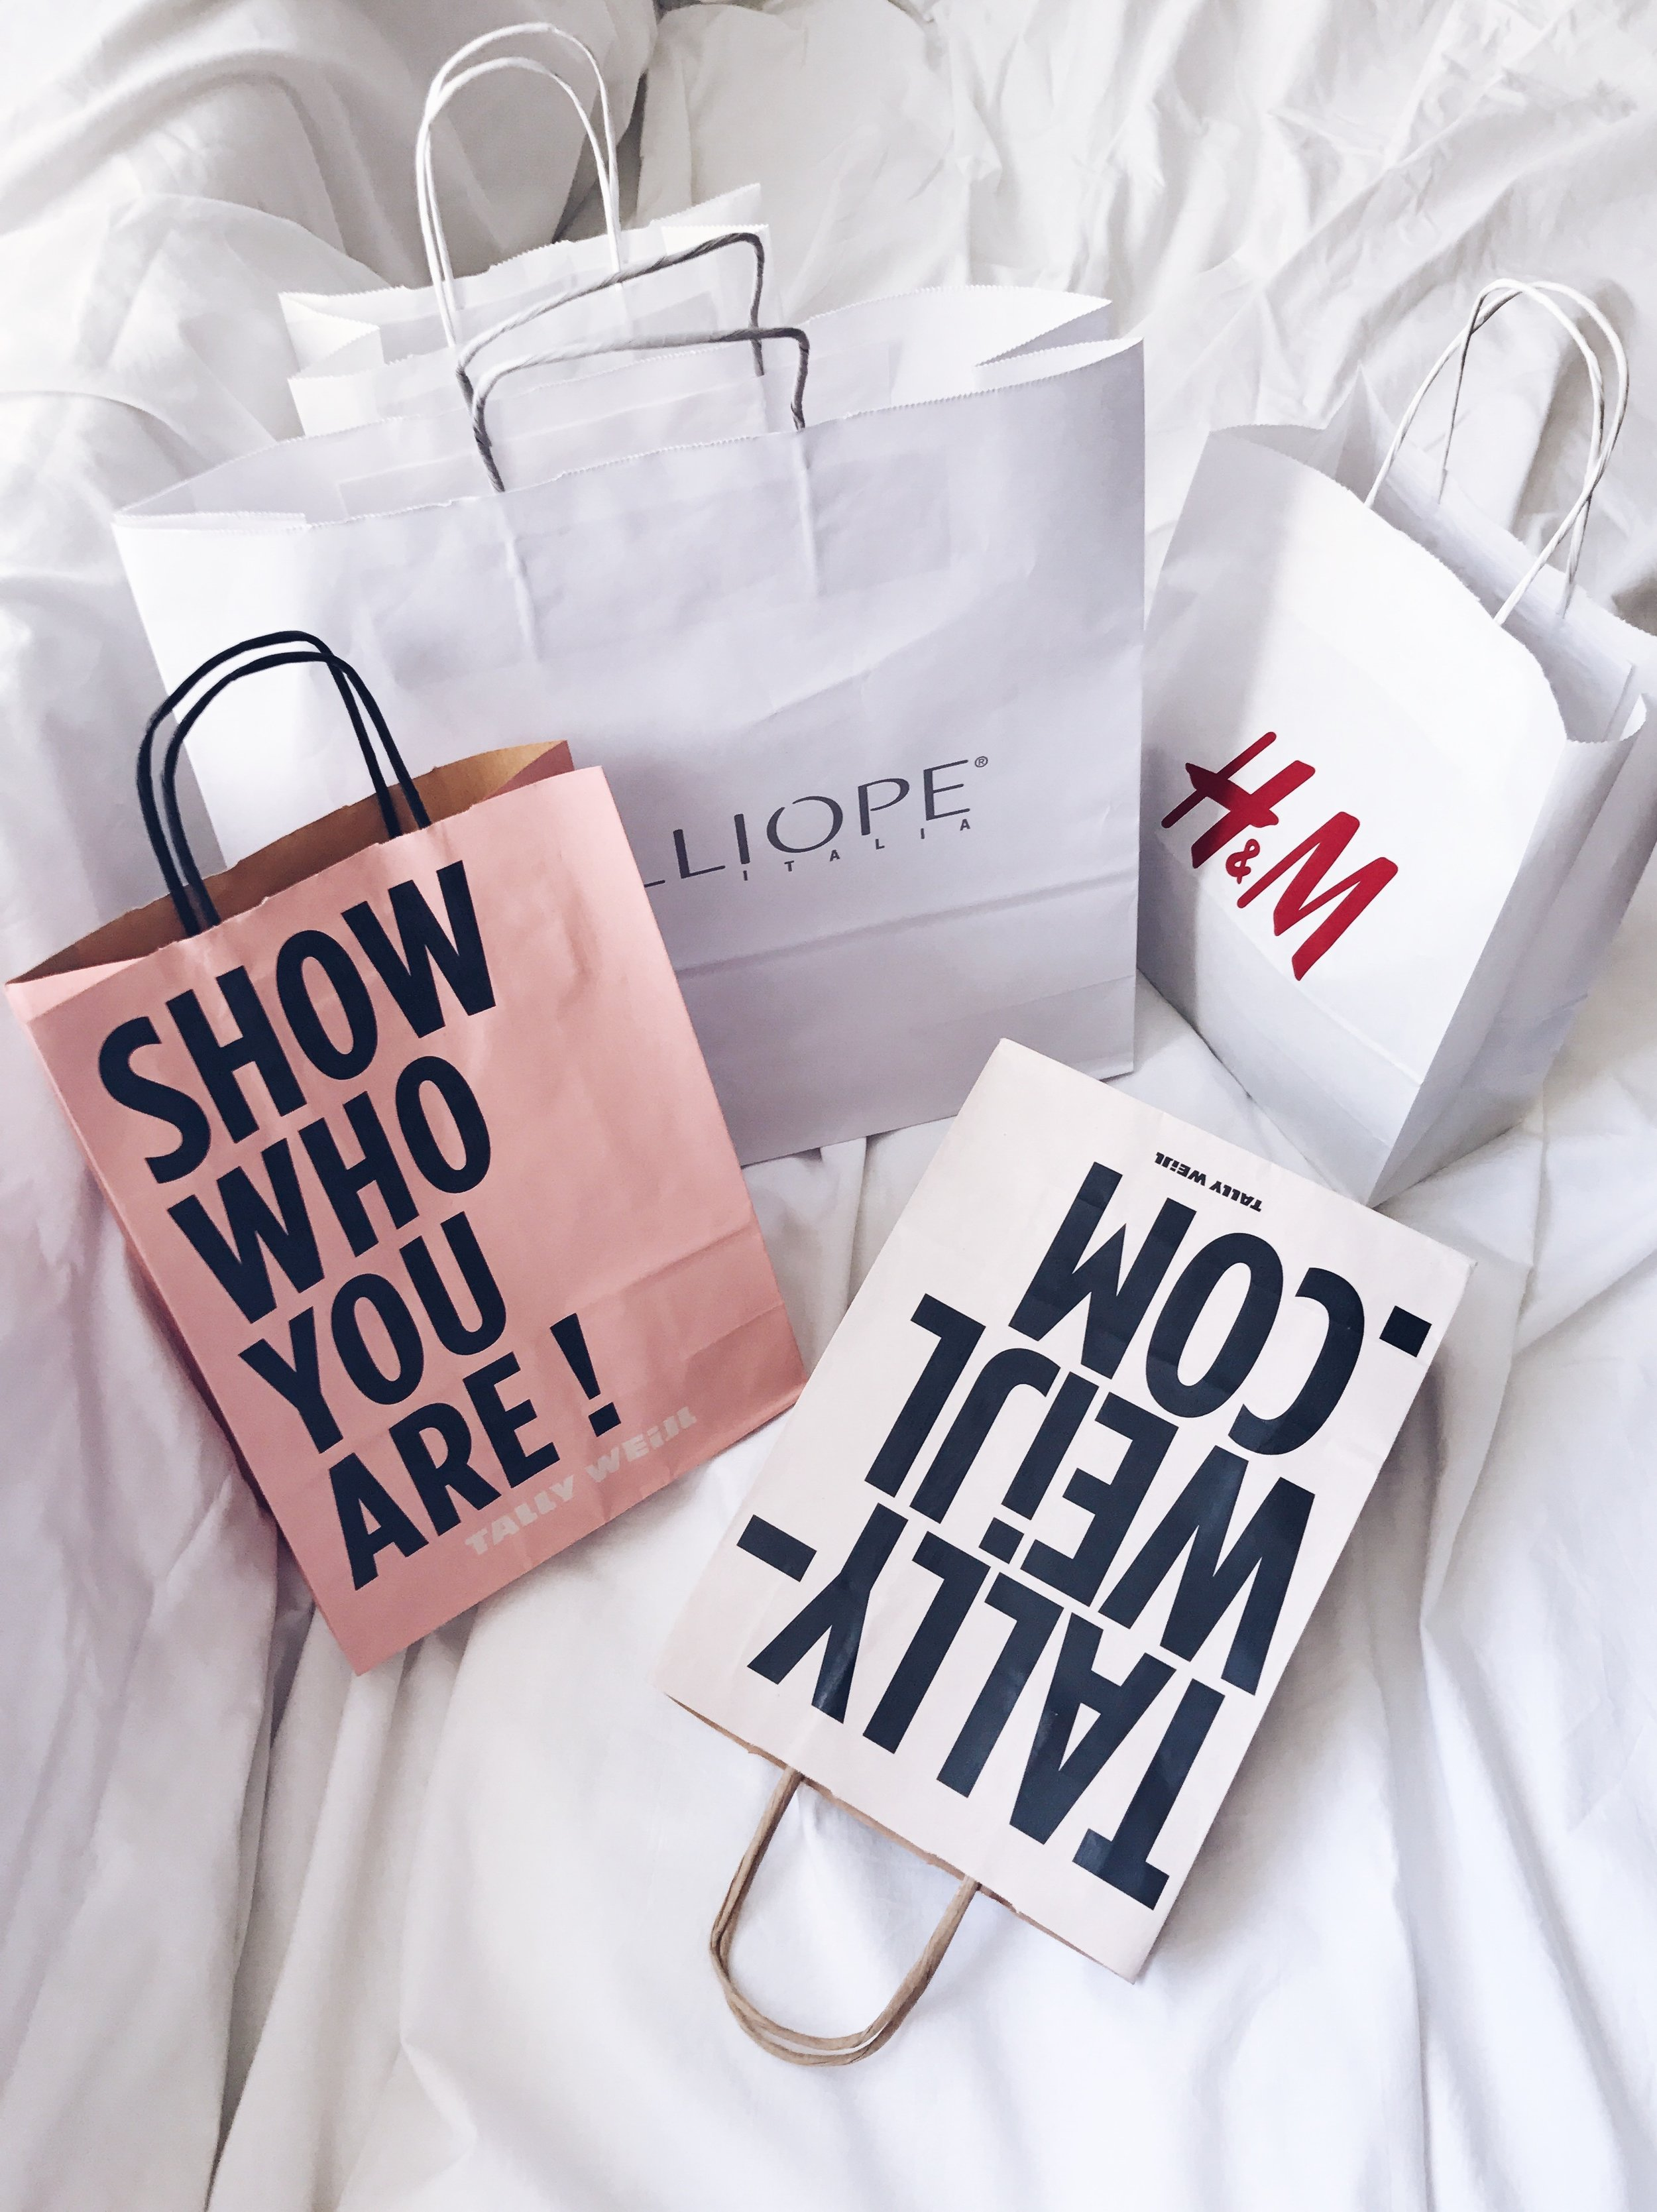 birthday present presents gift gifts bday blog blogger  23rd birthday fashion style clothes